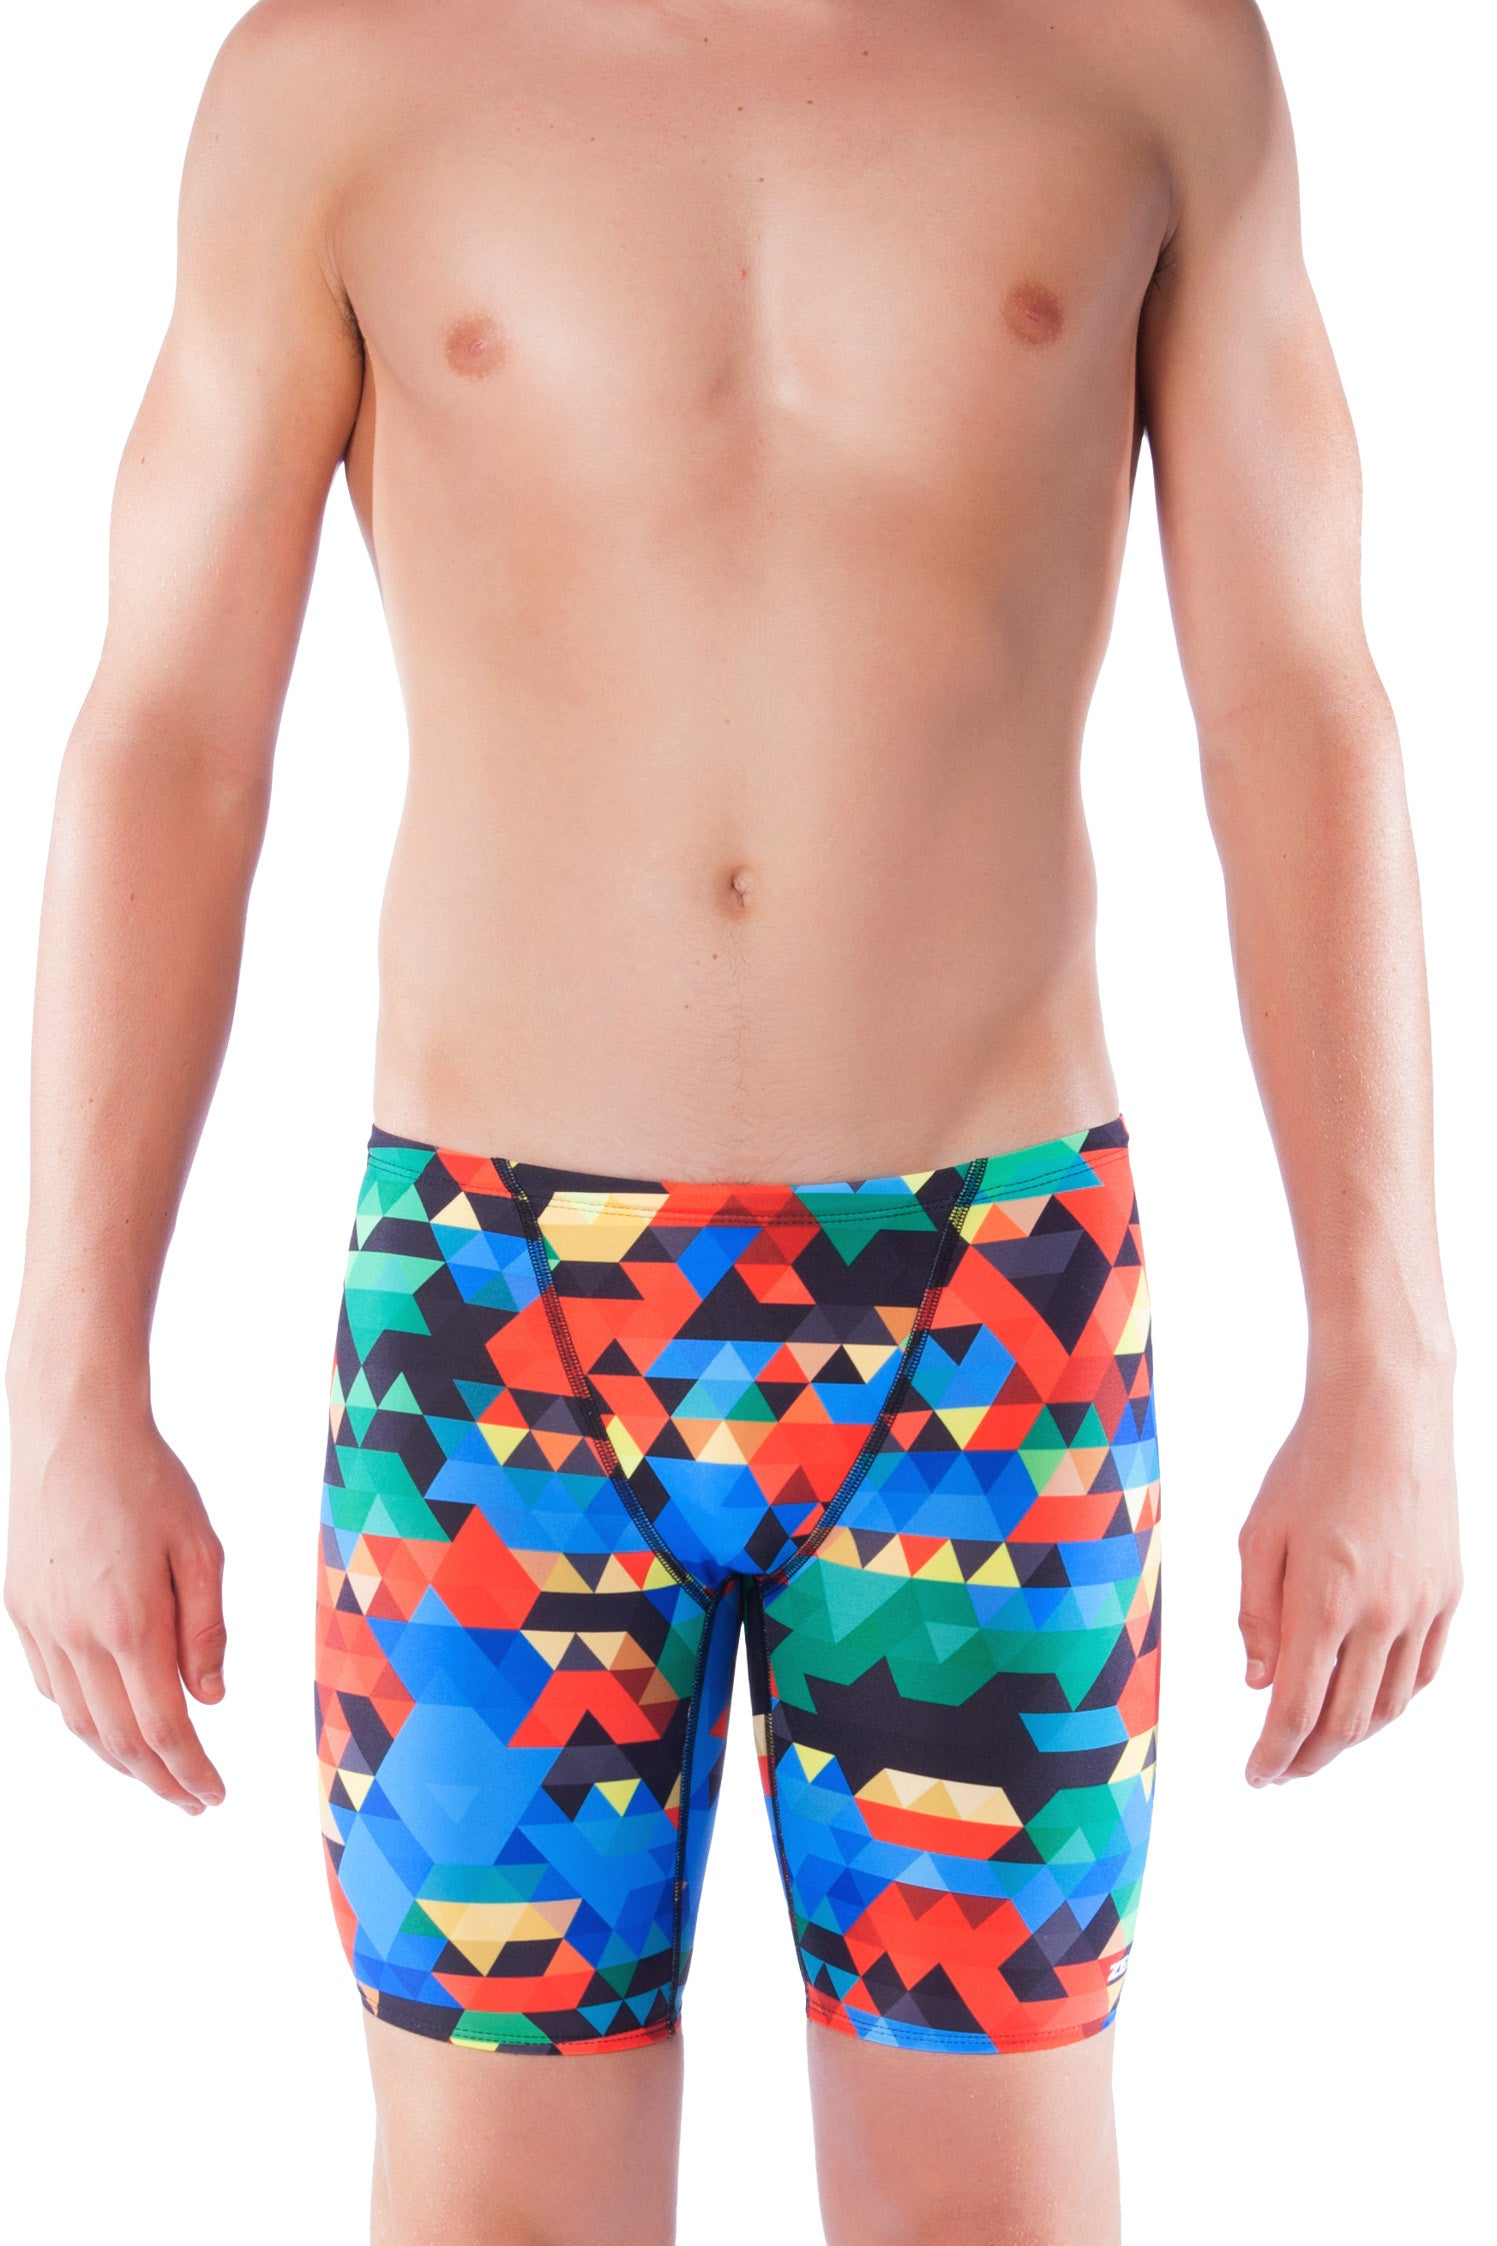 Showdown Boys Jammers - Shop Zealous Training Swimwear